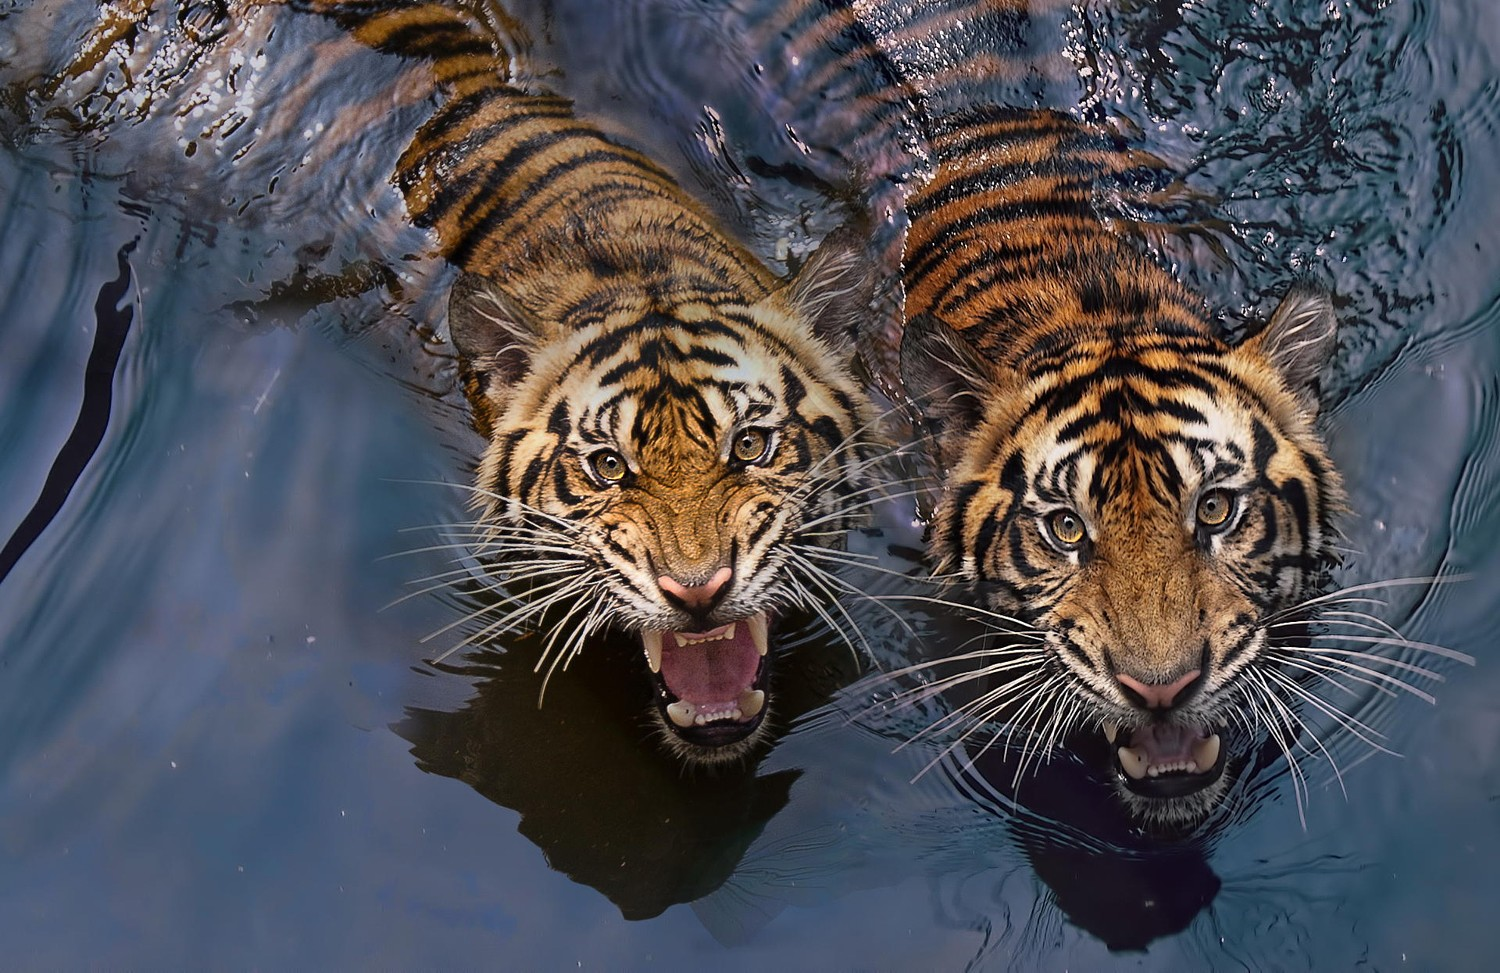 30+ Best Tigers Photos of that Will Leave You Spellbound